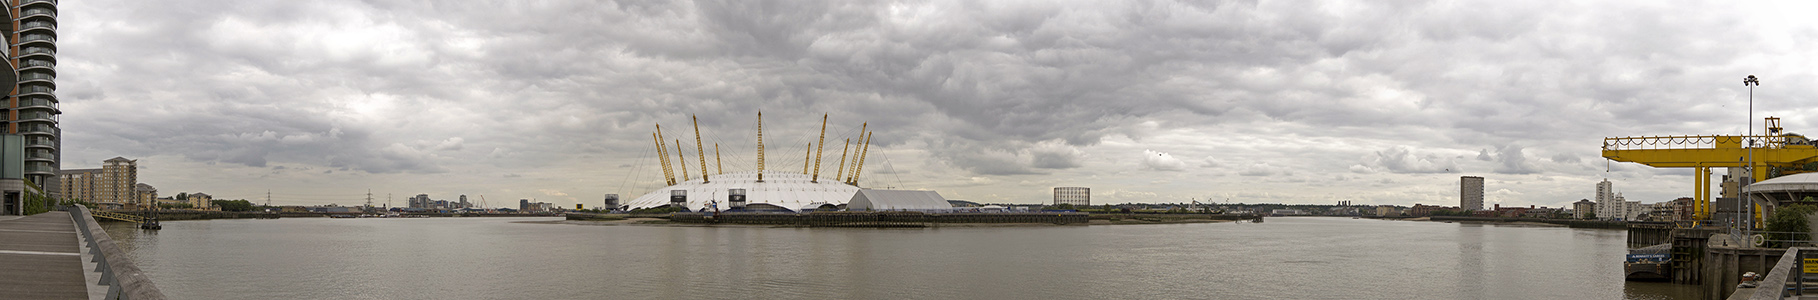 Blackwall, Themse, Greenwich Peninsula mit The O2 (Millennium Dome) London